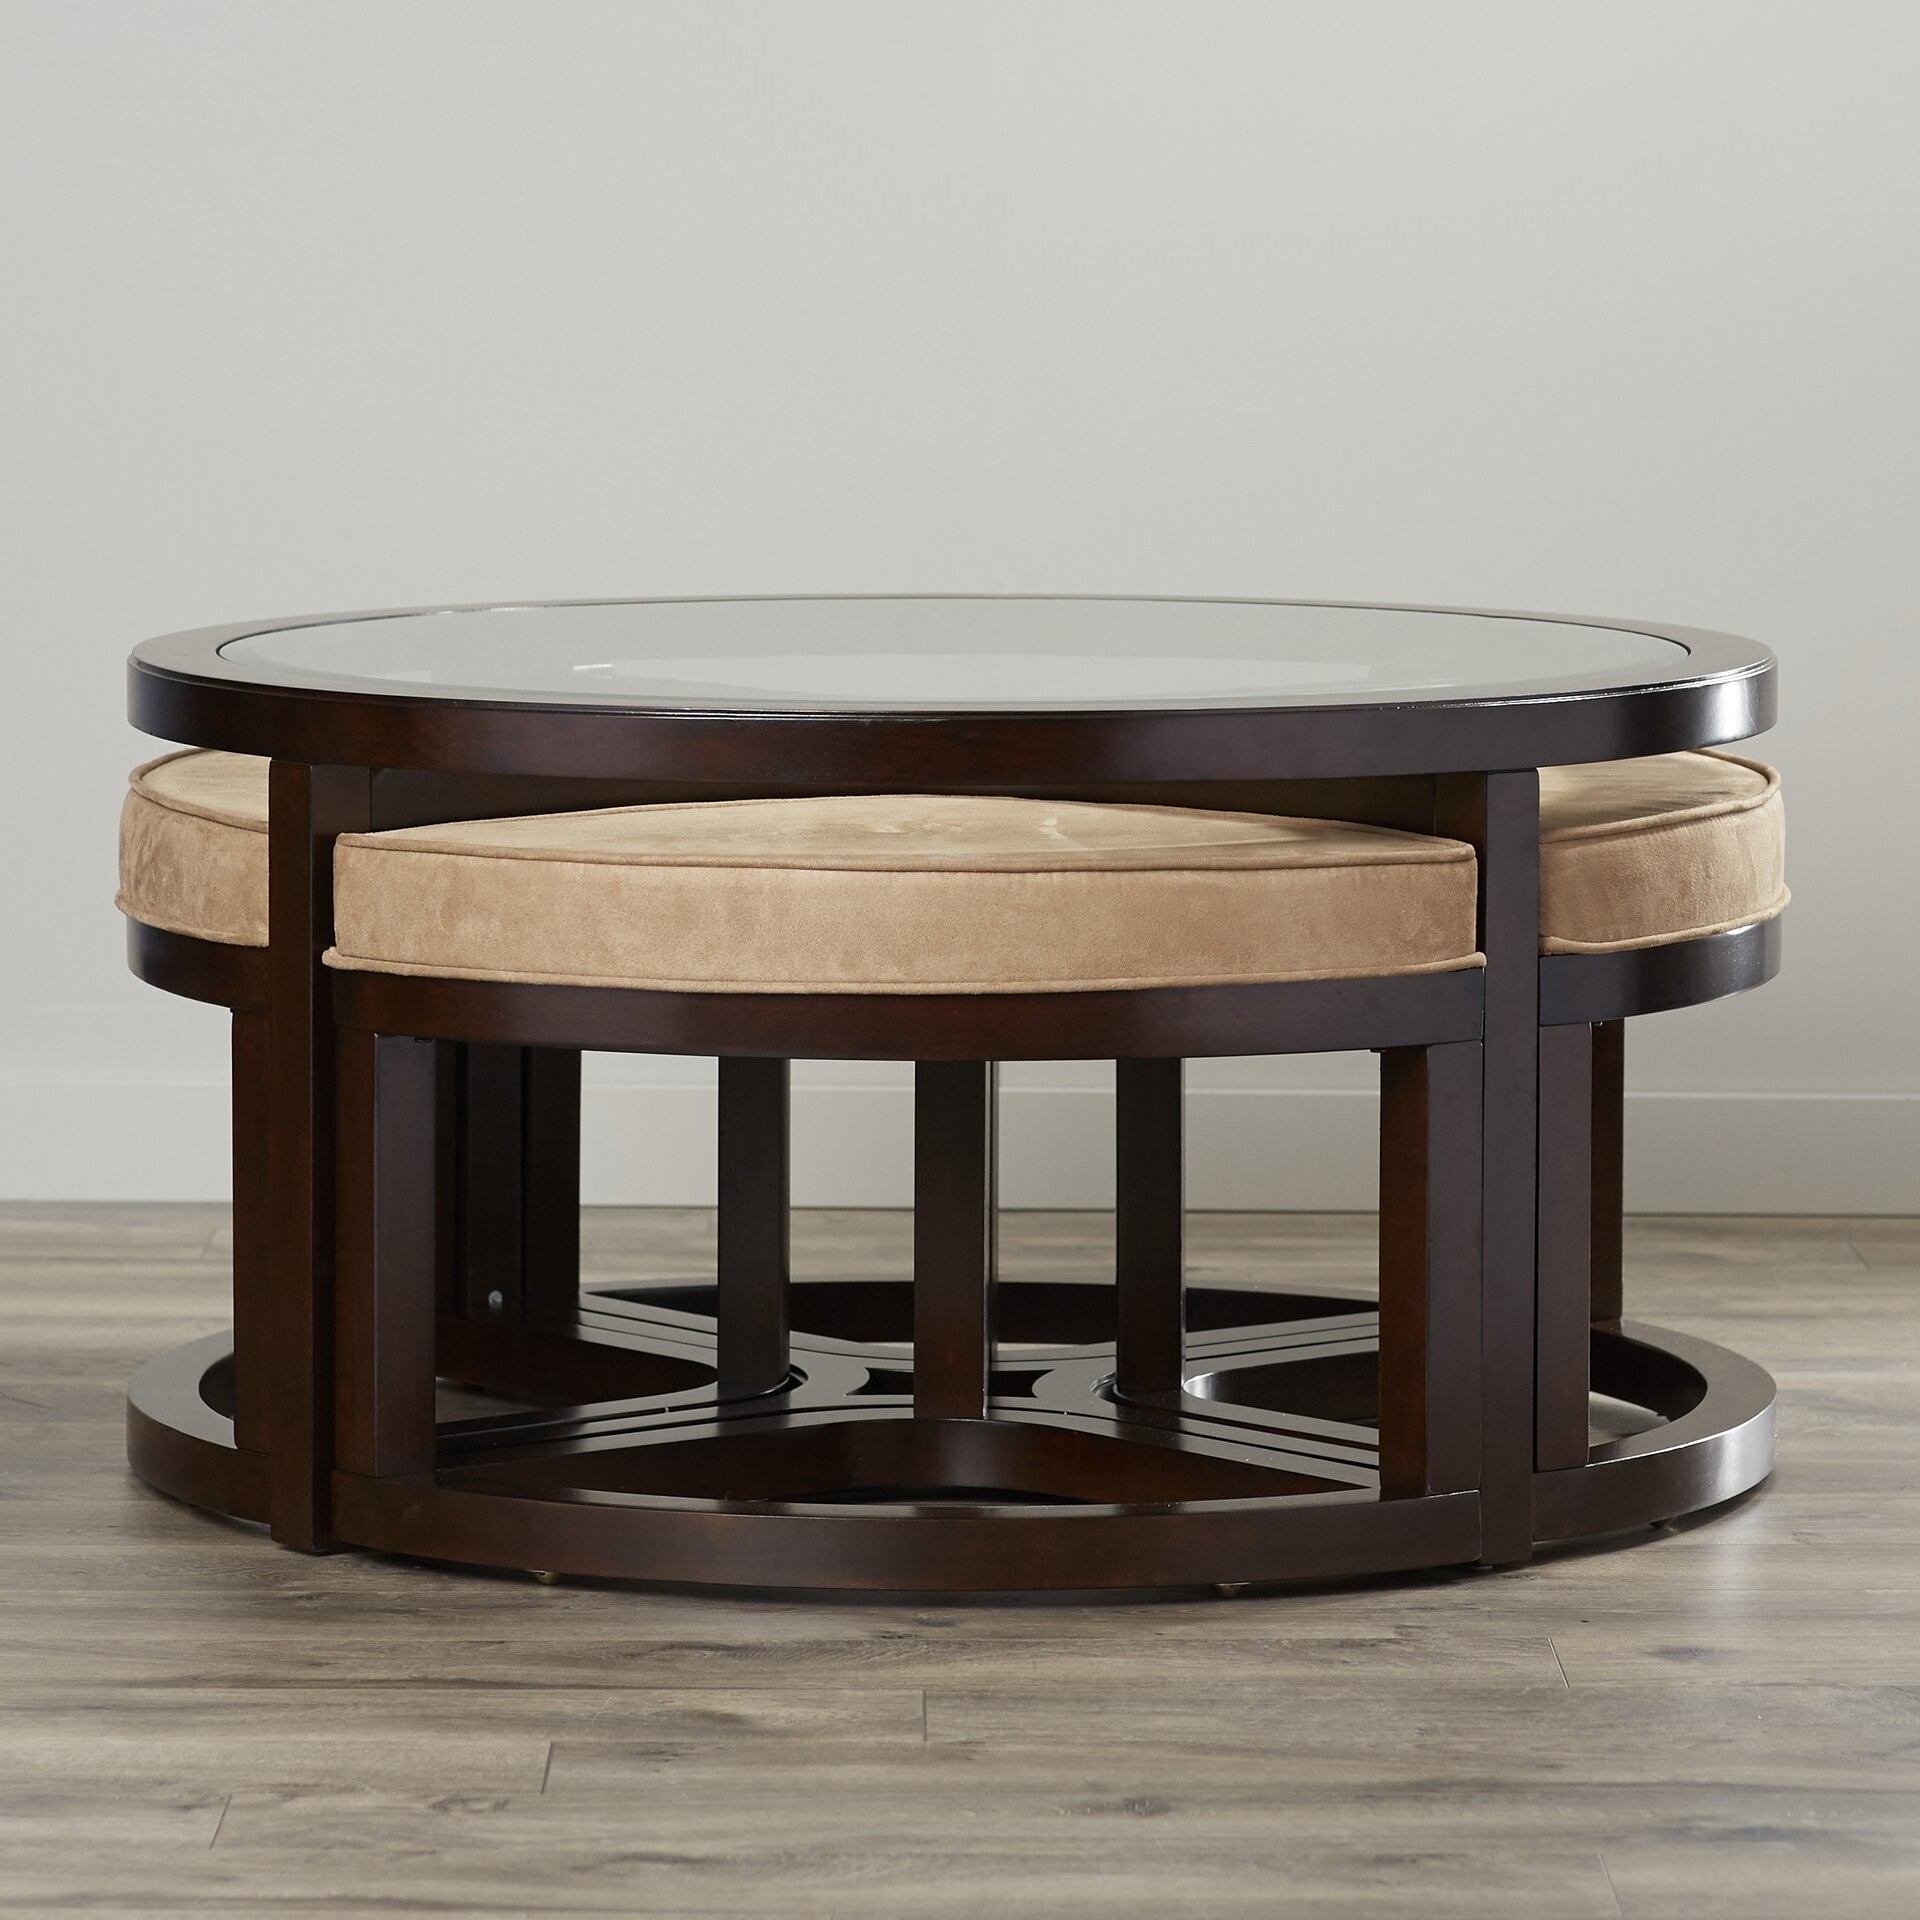 Round Coffee Table With Stools Ideas On Foter